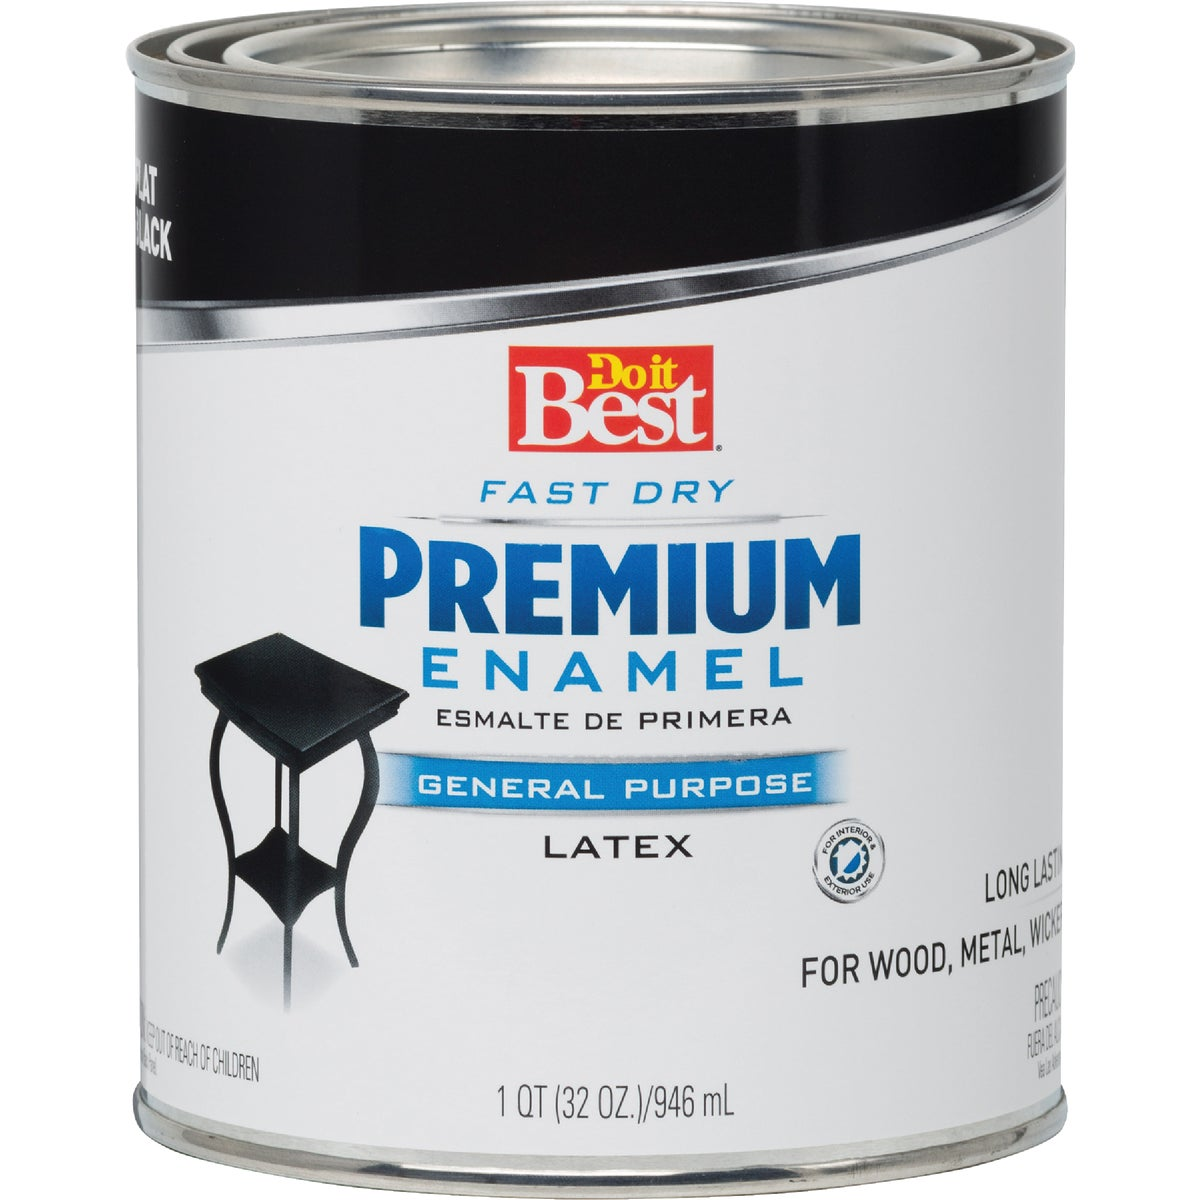 FLAT BLACK LATEX ENAMEL - 2202 by Rustoleum